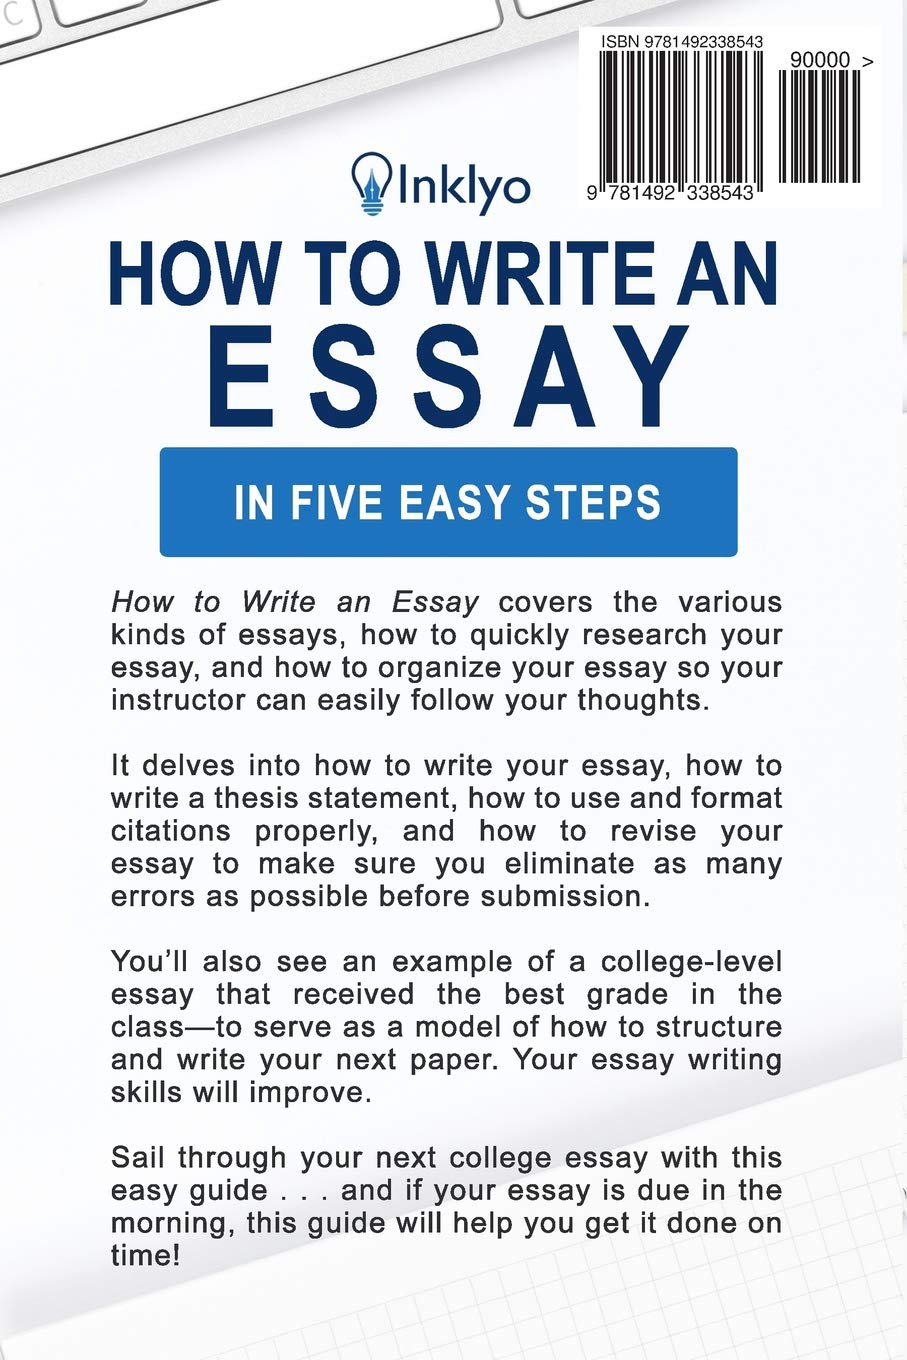 Thesis Statement For Persuasive Essay How To Write An Essay In Five Easy Steps Scribendi   Amazoncom Books Essay Paper Generator also Environmental Health Essay How To Write An Essay In Five Easy Steps Scribendi   Narrative Essay Thesis